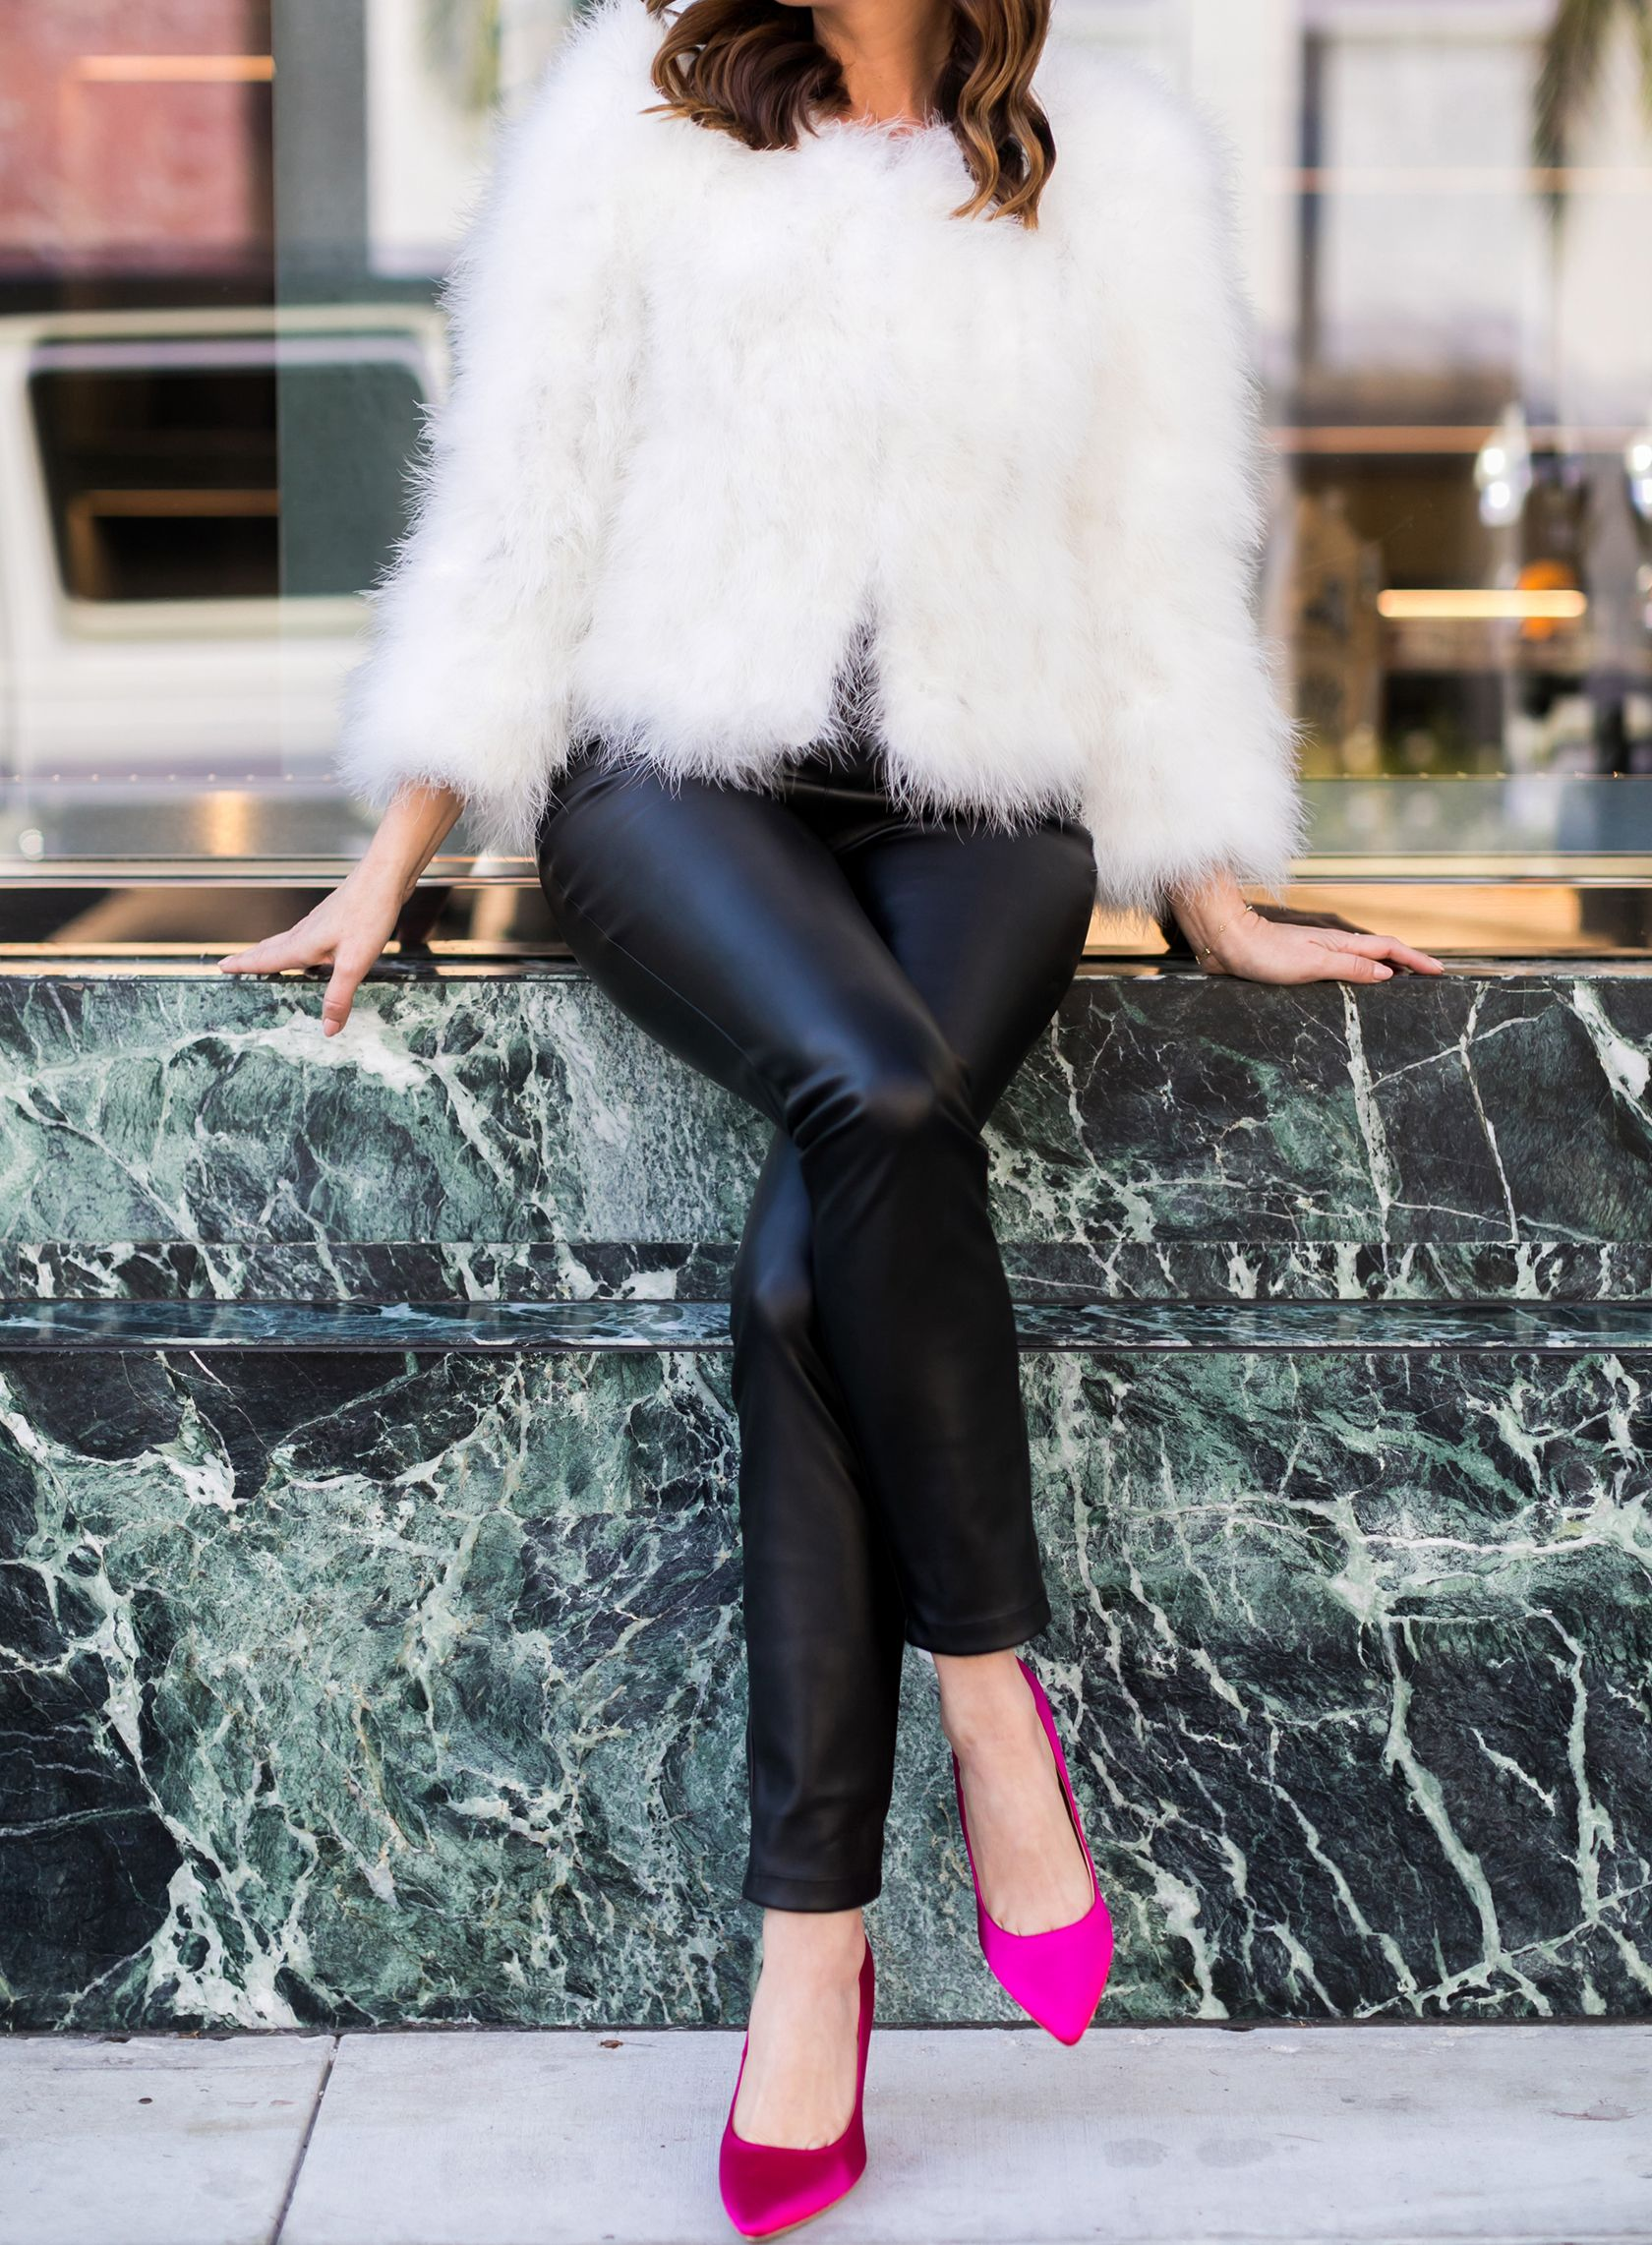 349373e56a4 Sydne Style shows holiday cocktail party outfit ideas in leather pants fur  coat and hot pink pumps  fur  leather  leatherleggings  holiday  pink  pumps    ...